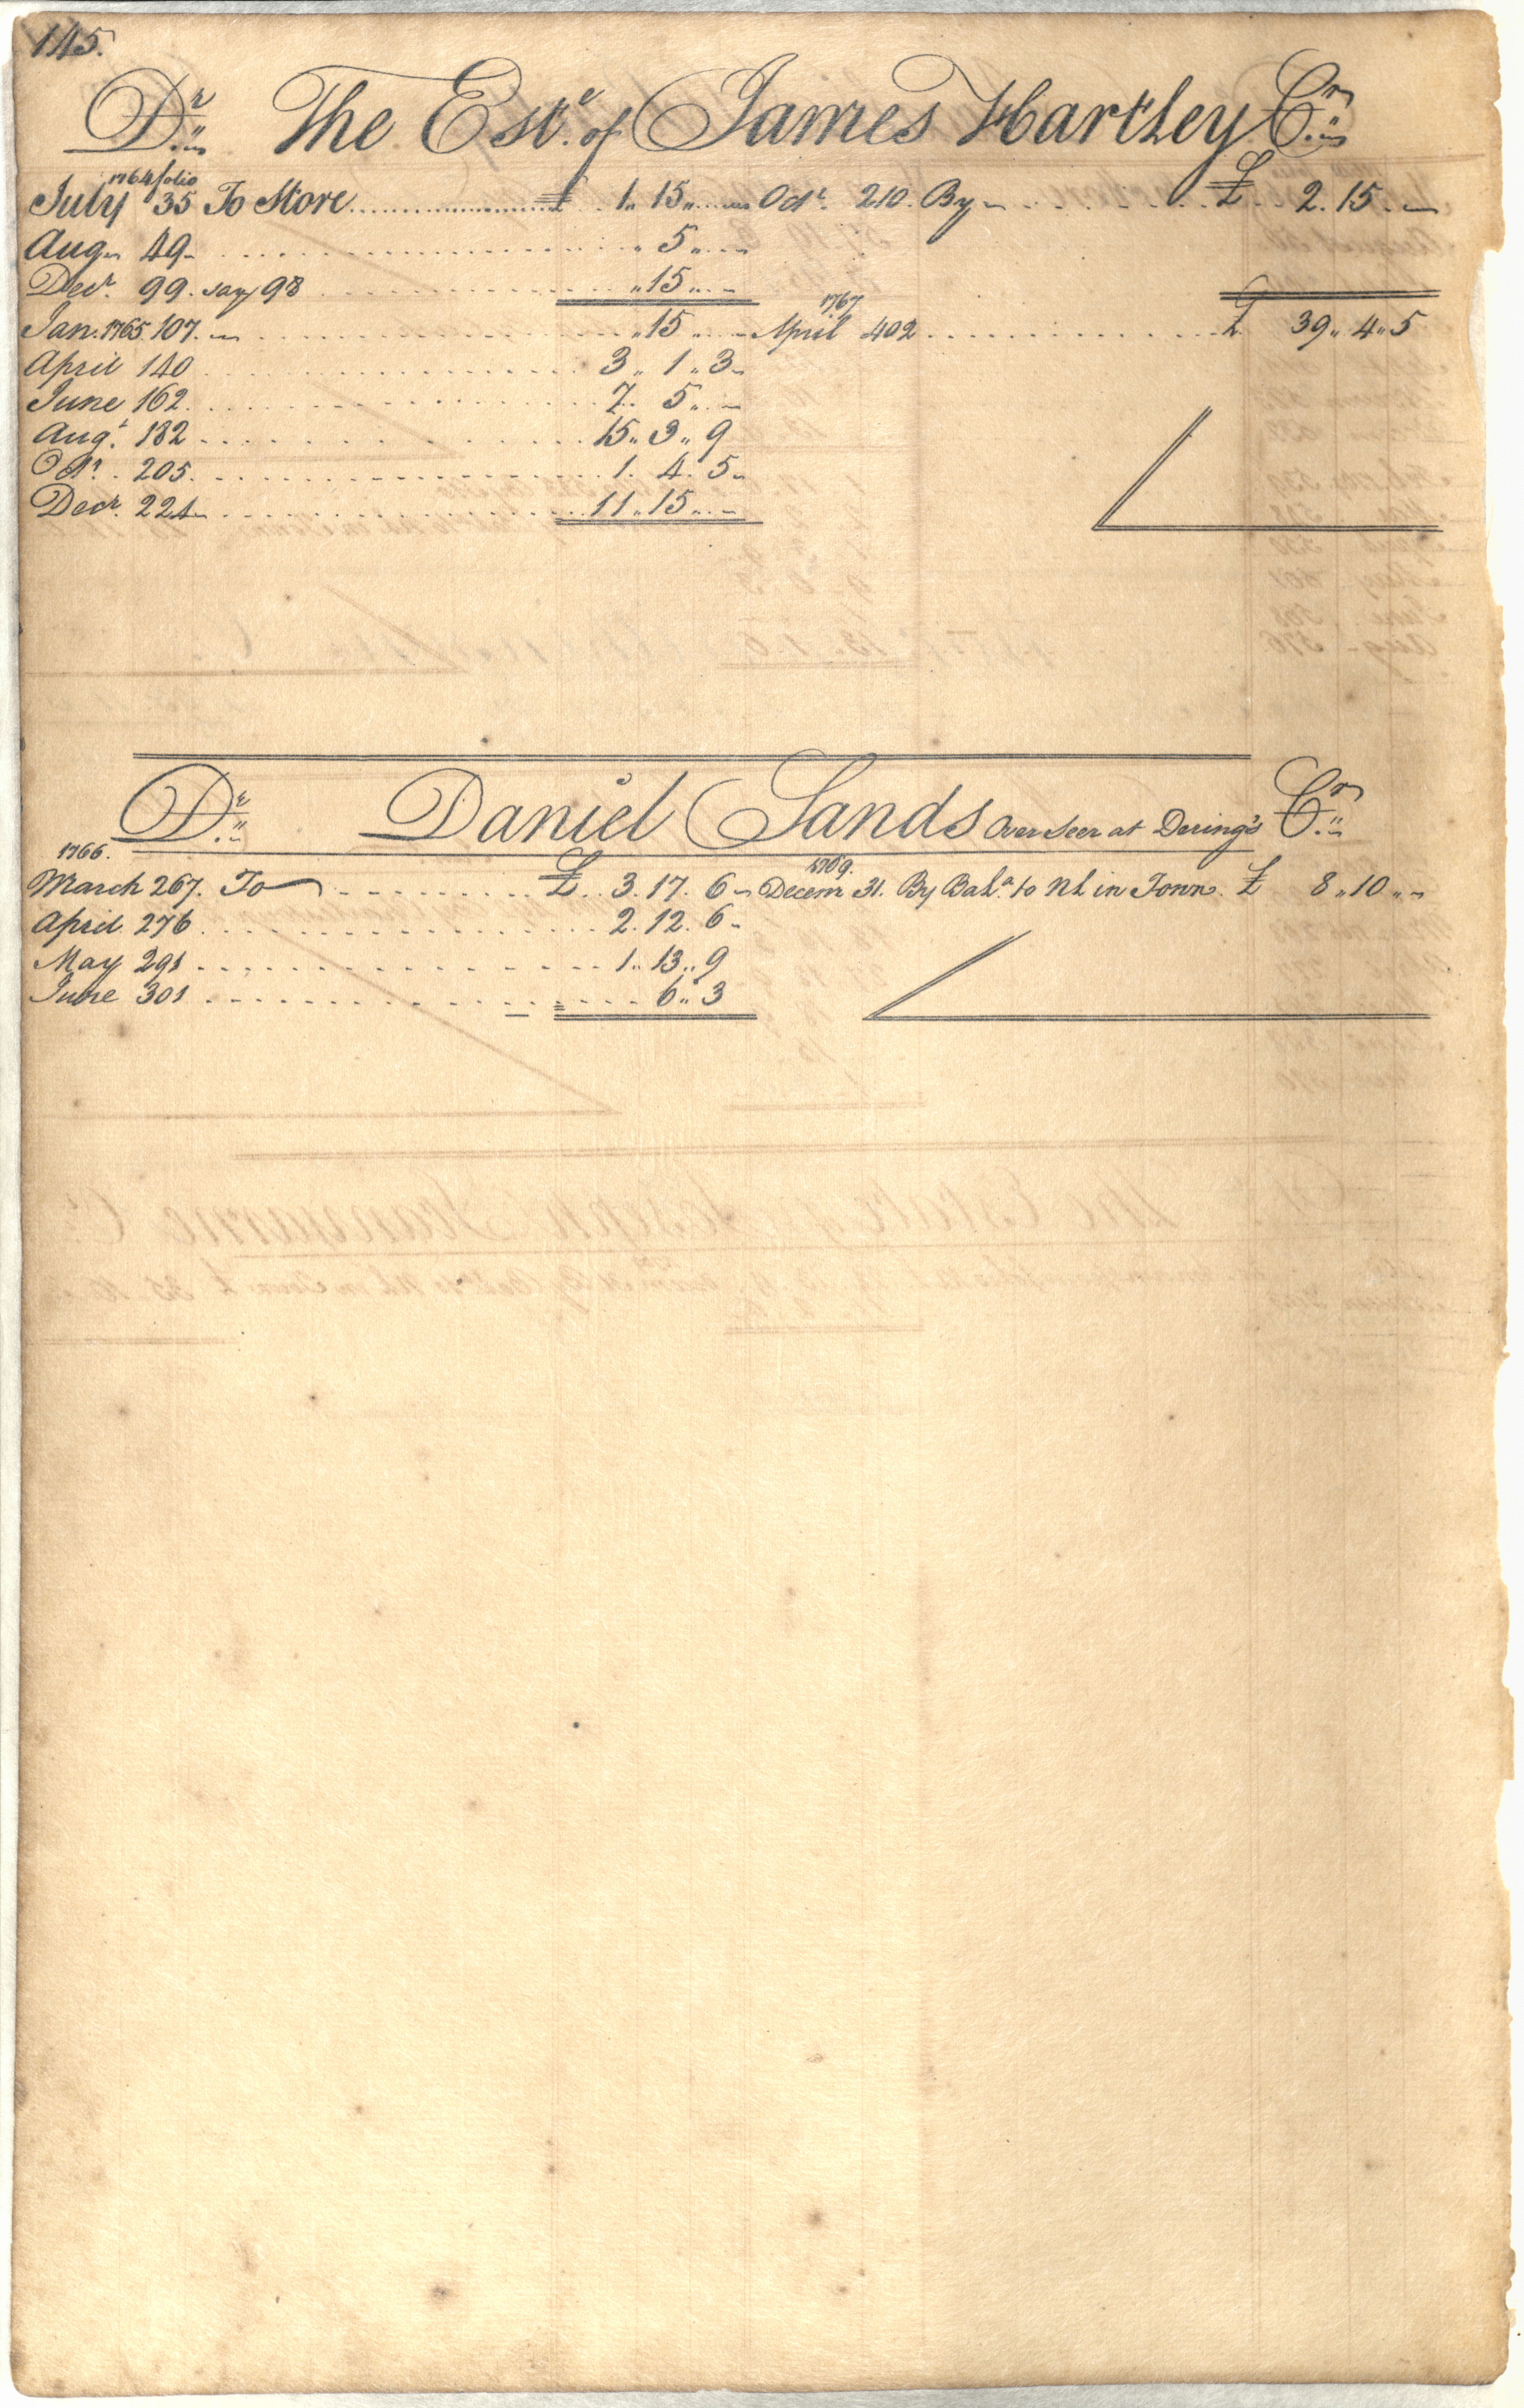 Plowden Weston's Business Ledger, page 145